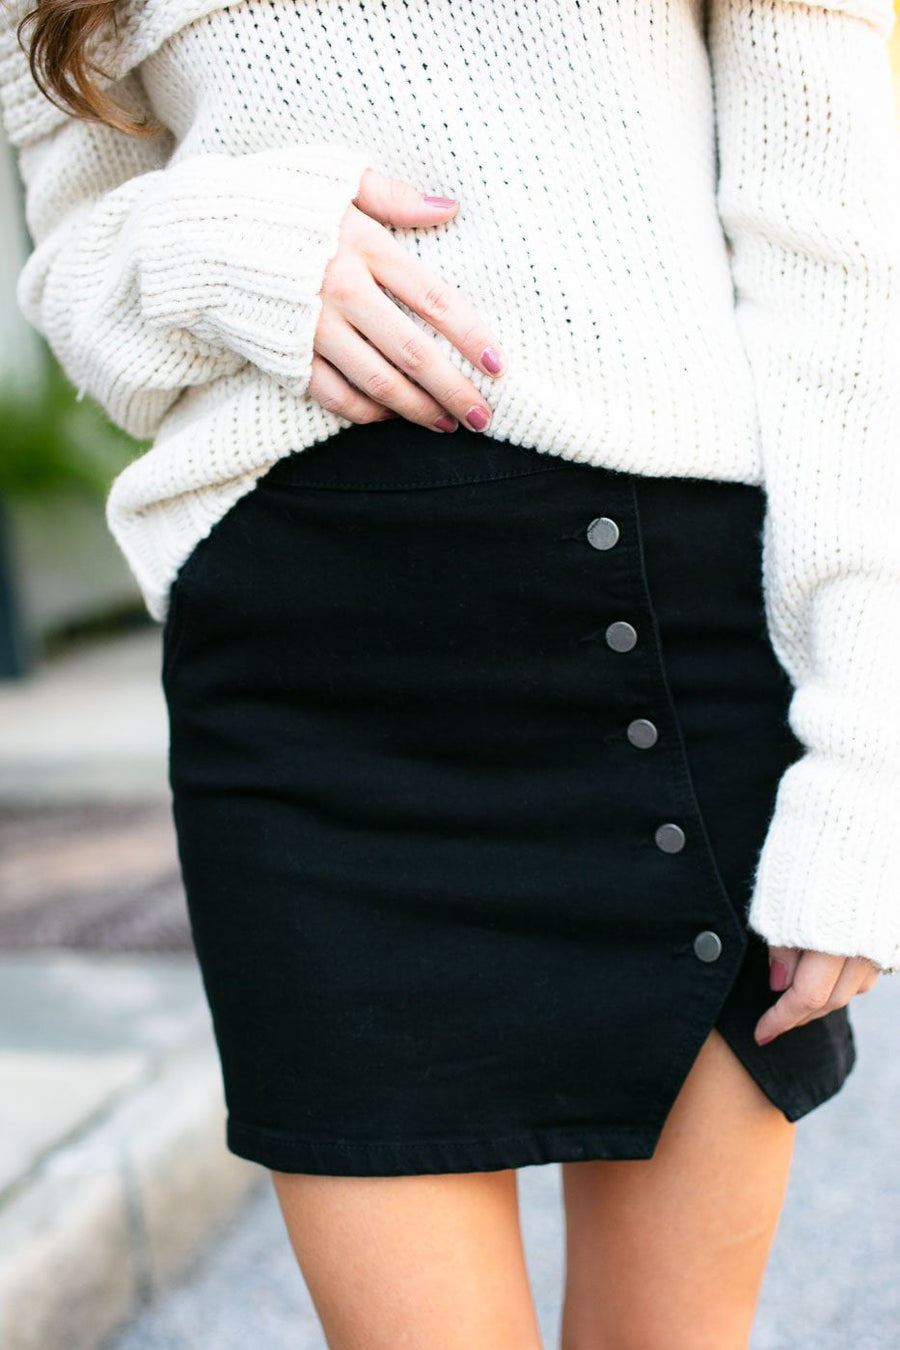 Bottoms Skylar Black Button Up Mini Skirt - Lotus Boutique